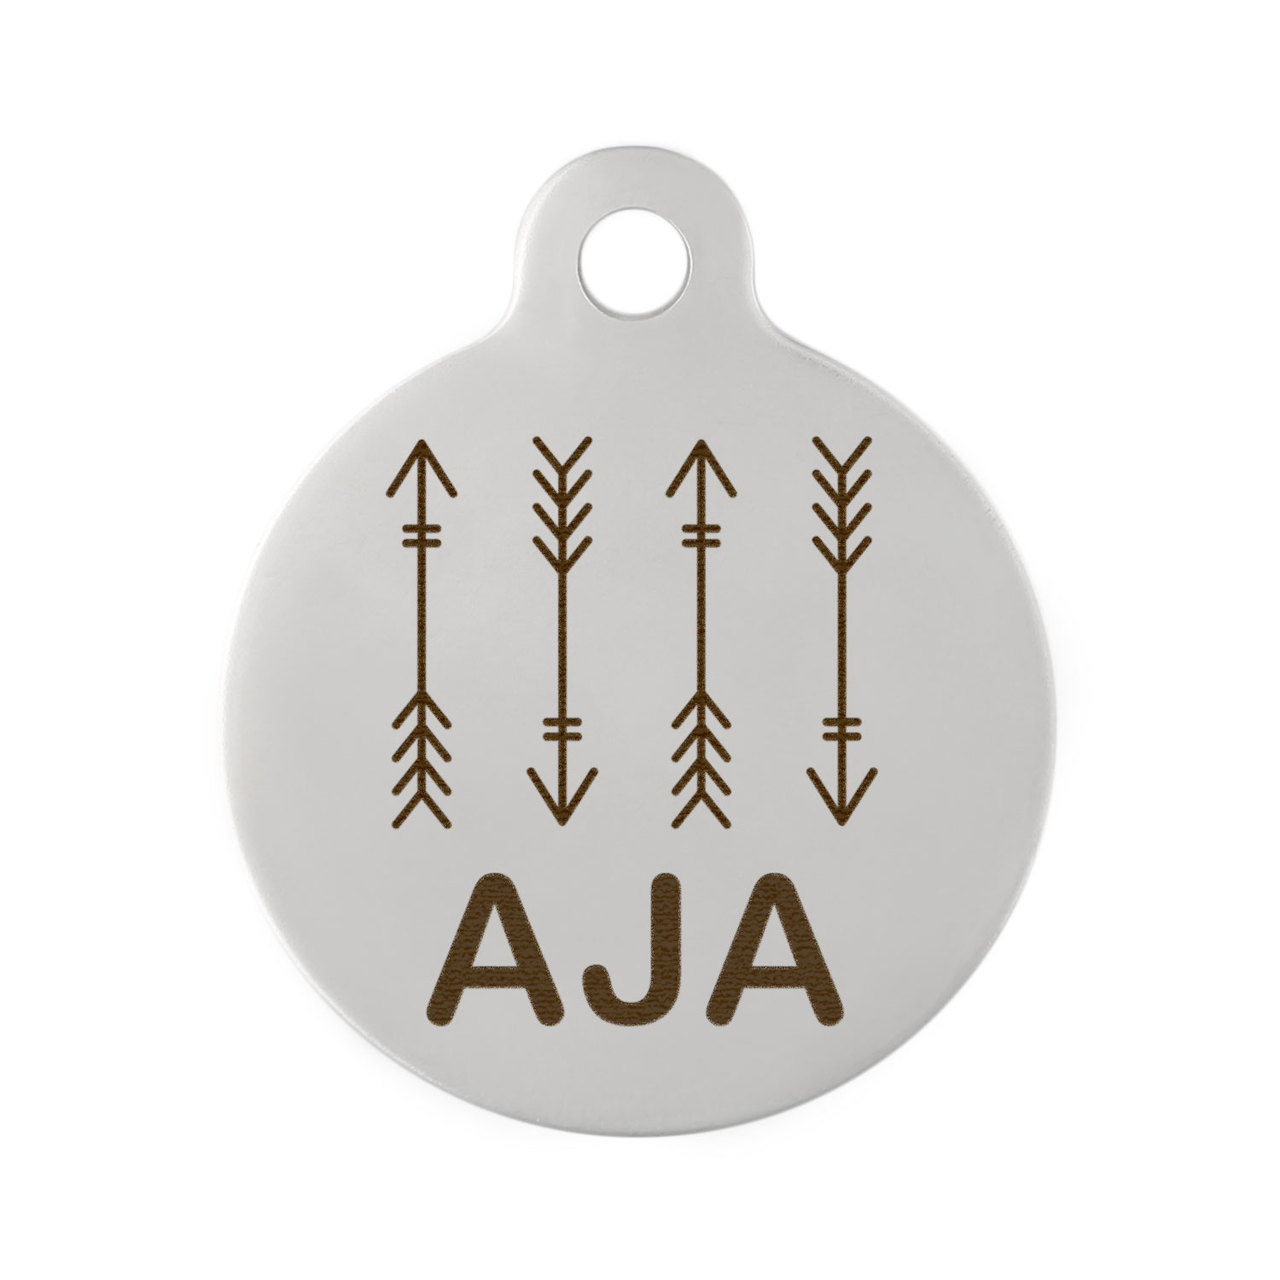 Arrow Design Dog Tag - Thin Design on Stainless Steel